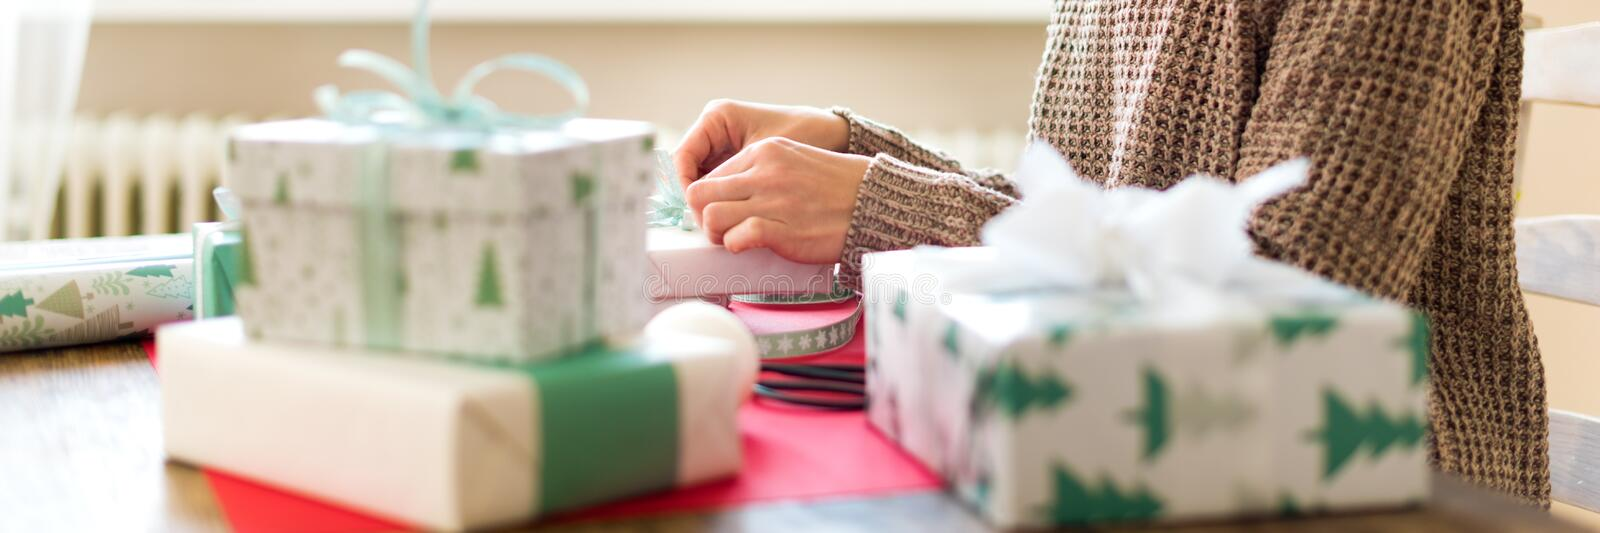 DIY Gift Wrapping Banner. Unrecognisable woman wrapping beautiful nordic style christmas gifts. Hands close up. DIY Gift Wrapping Banner. Unrecognisable woman royalty free stock image